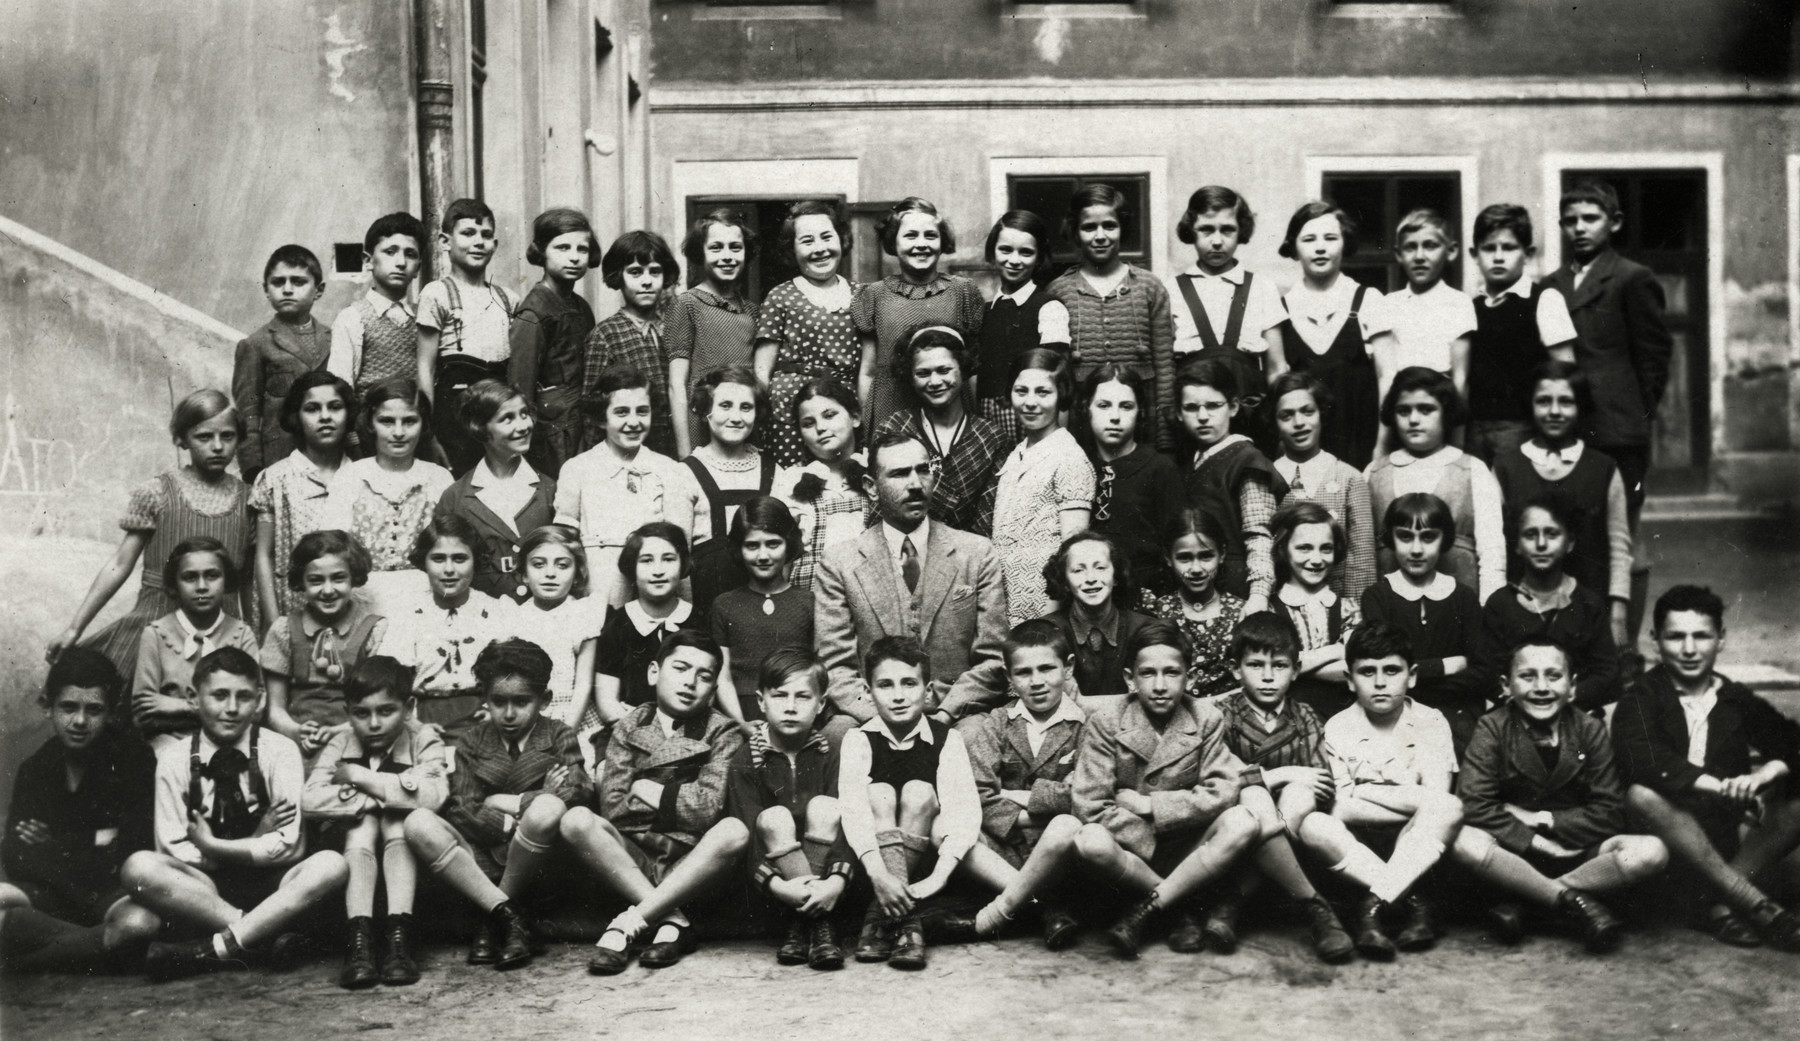 Group portrait of the children in the Nelog Jewish school in Bratislava.  David Zigmund Steiner is pictured 6th from the right on the bottom row.